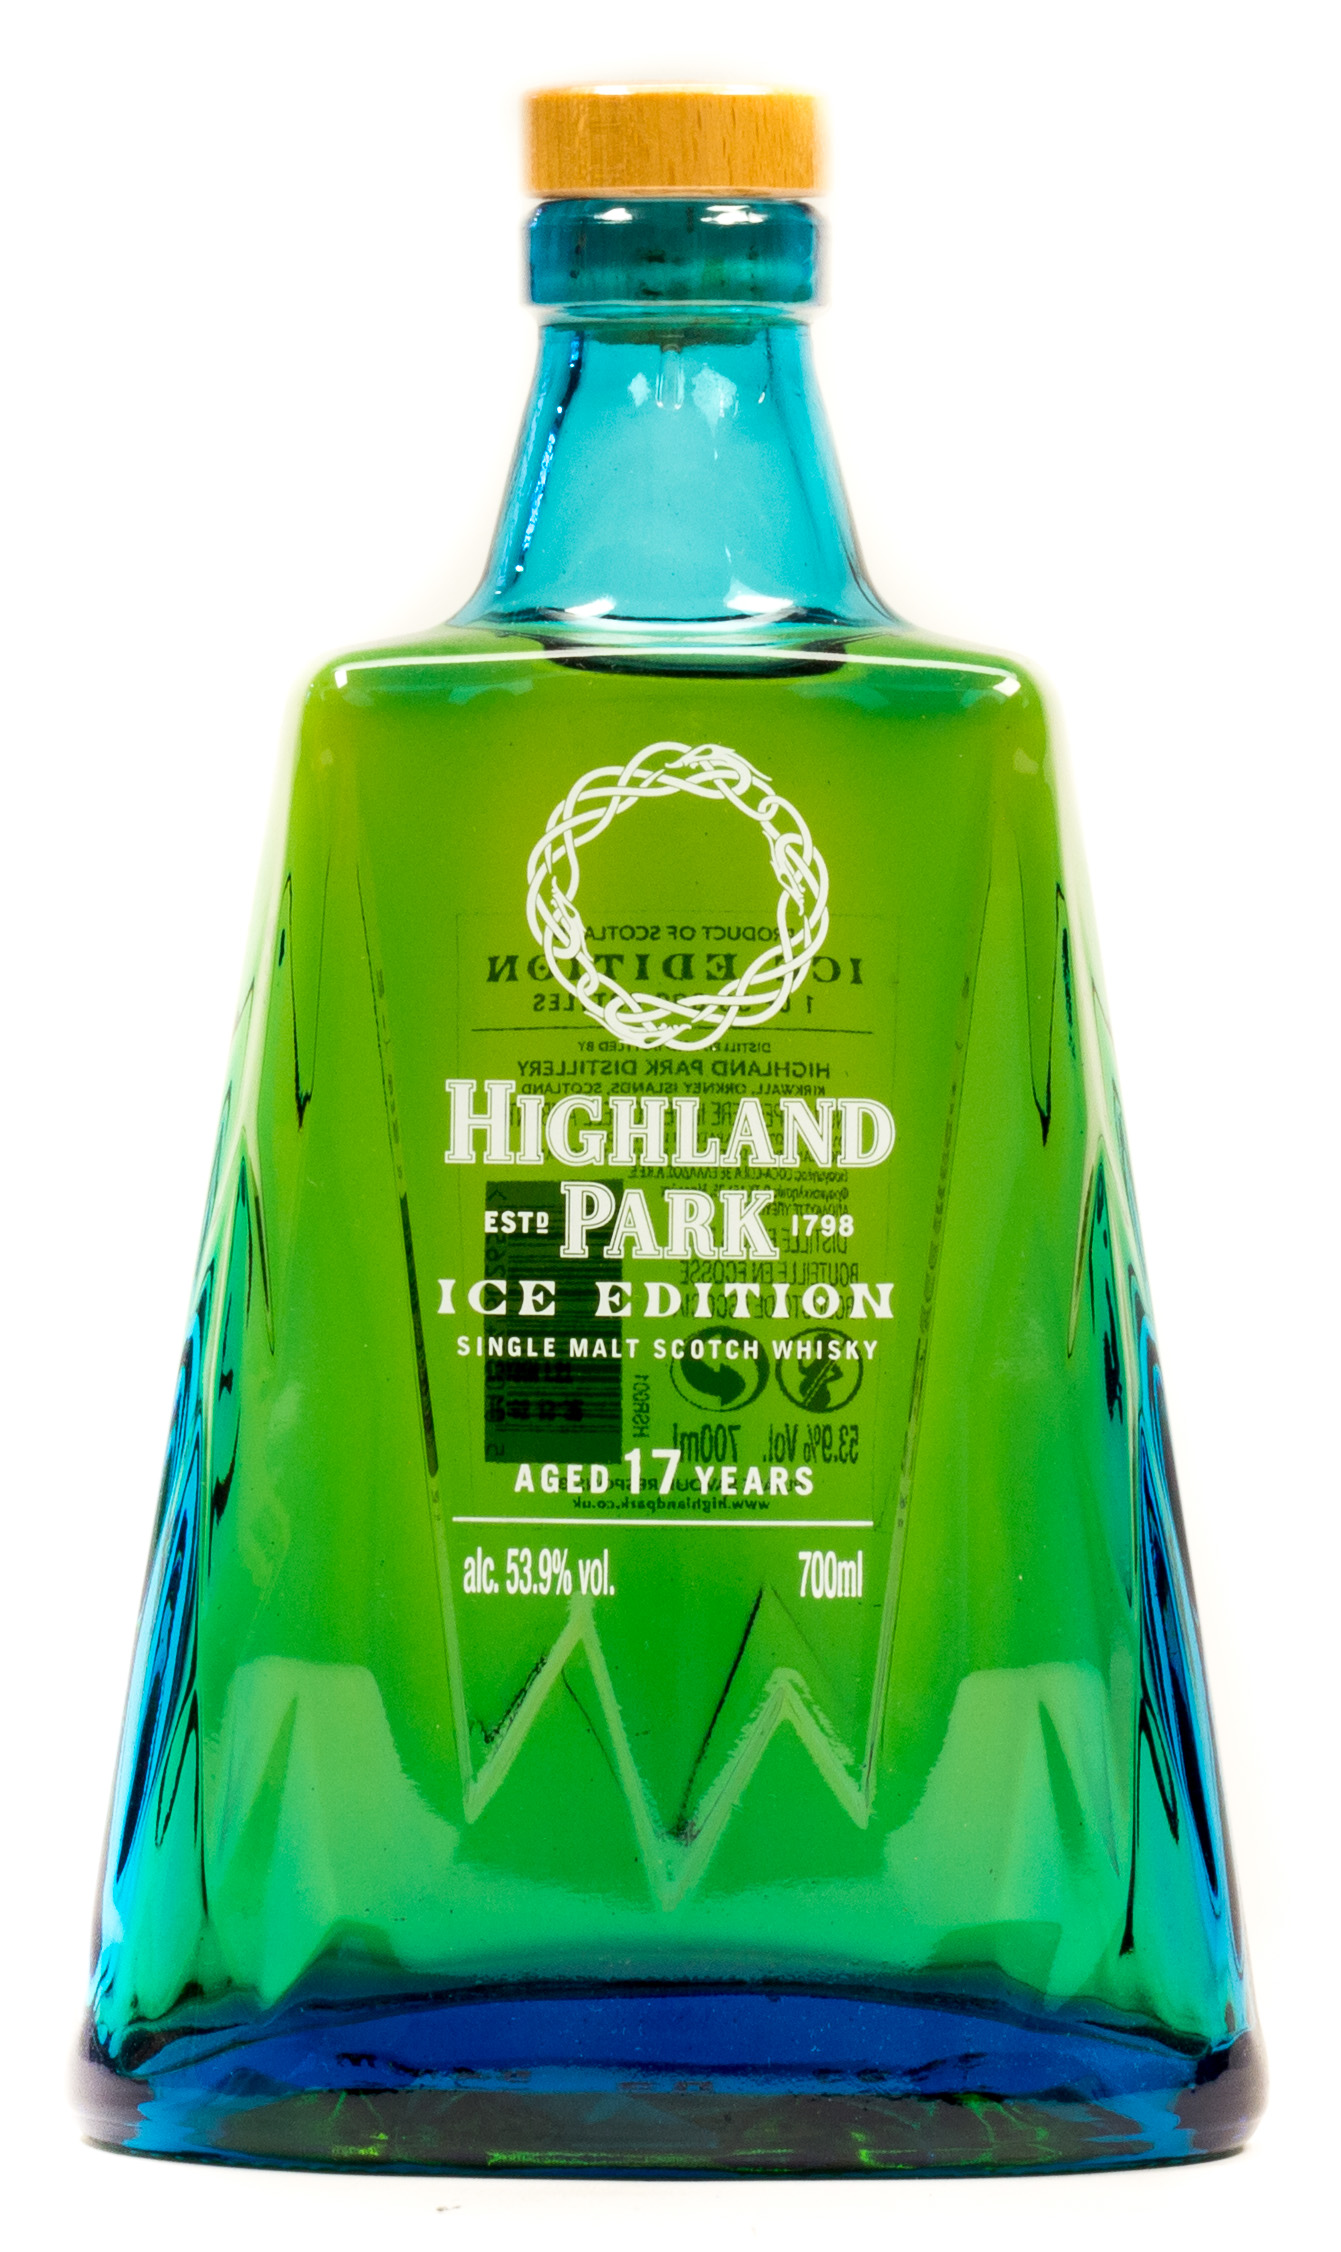 Highland Park Ice Edition Single Malt Scotch Whisky 0,7 l